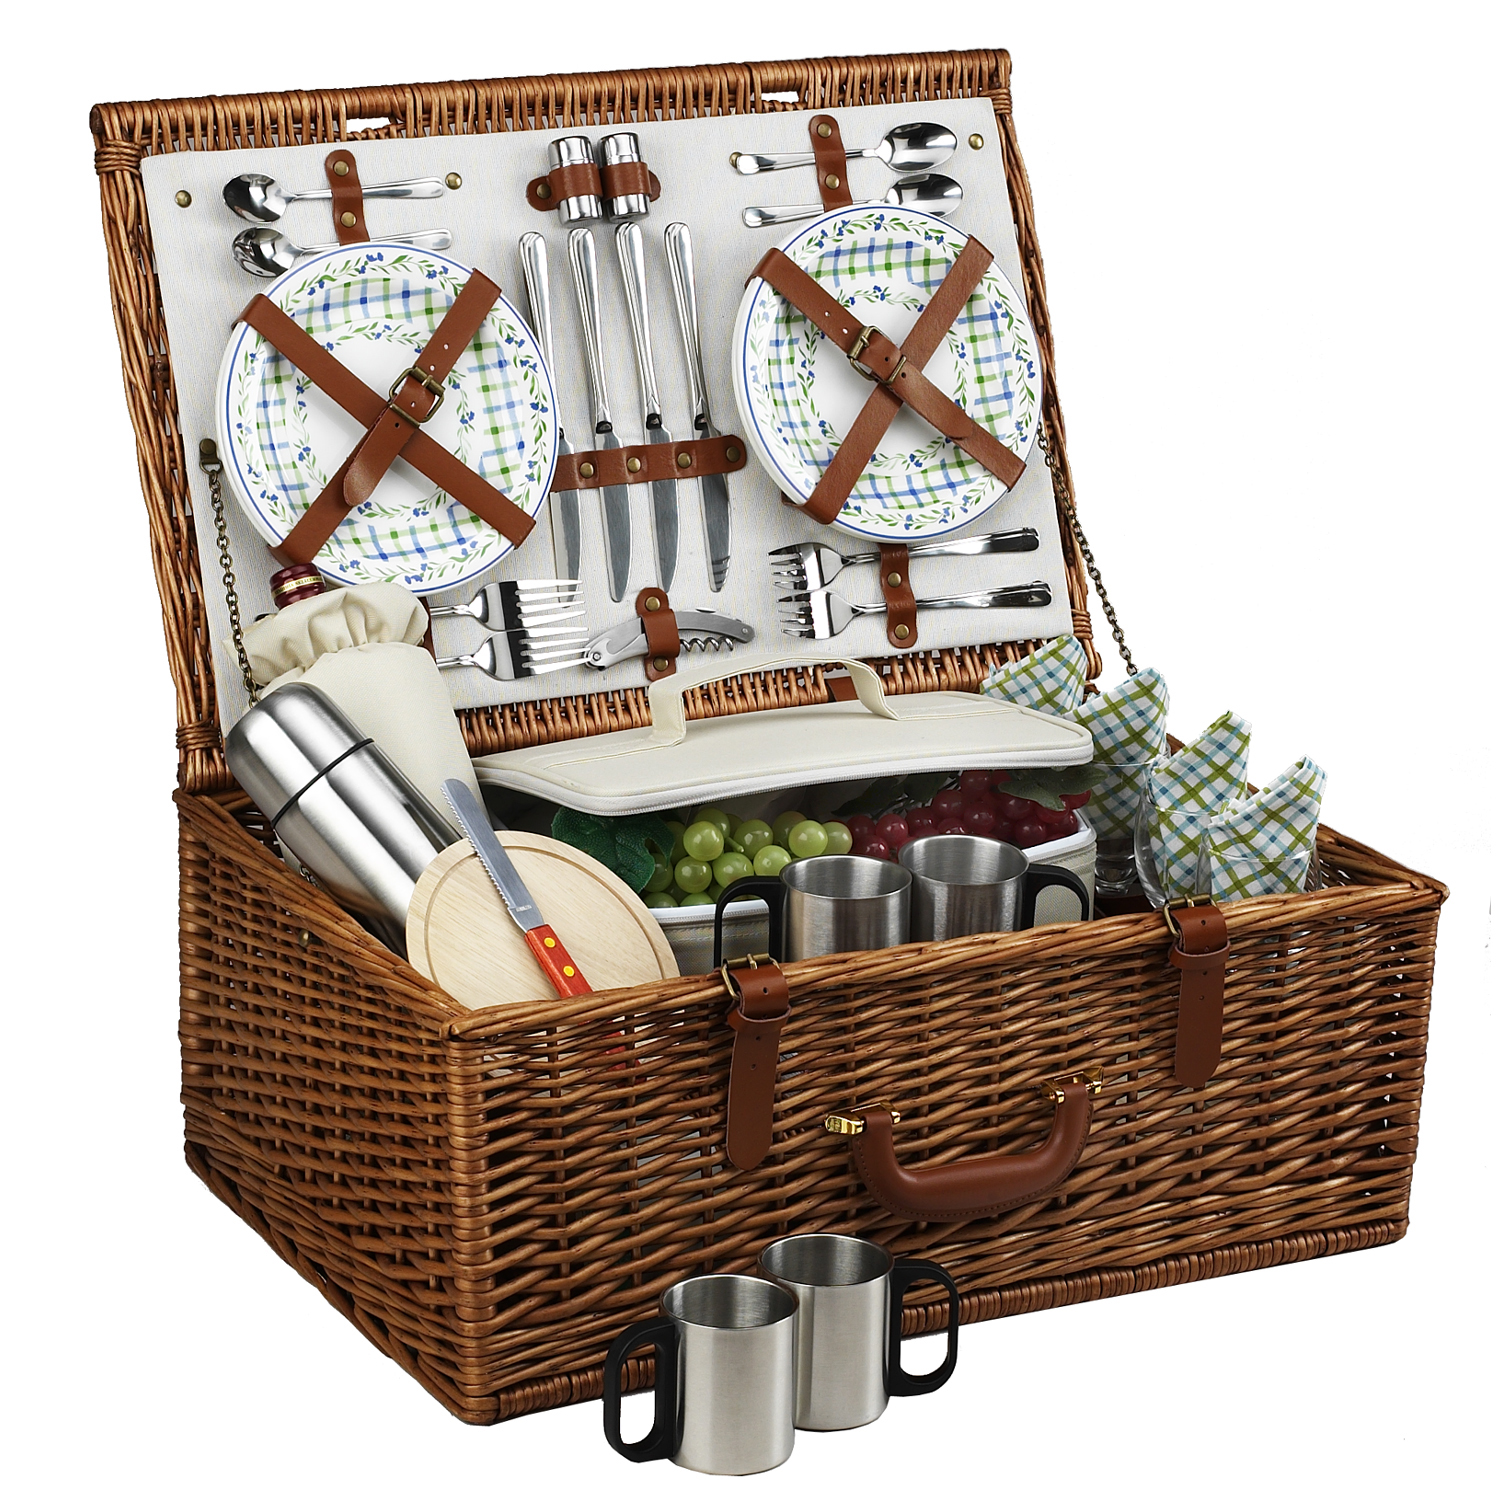 Picnic At Ascot Dorset Basket for Four with Coffee Service in Gazebo